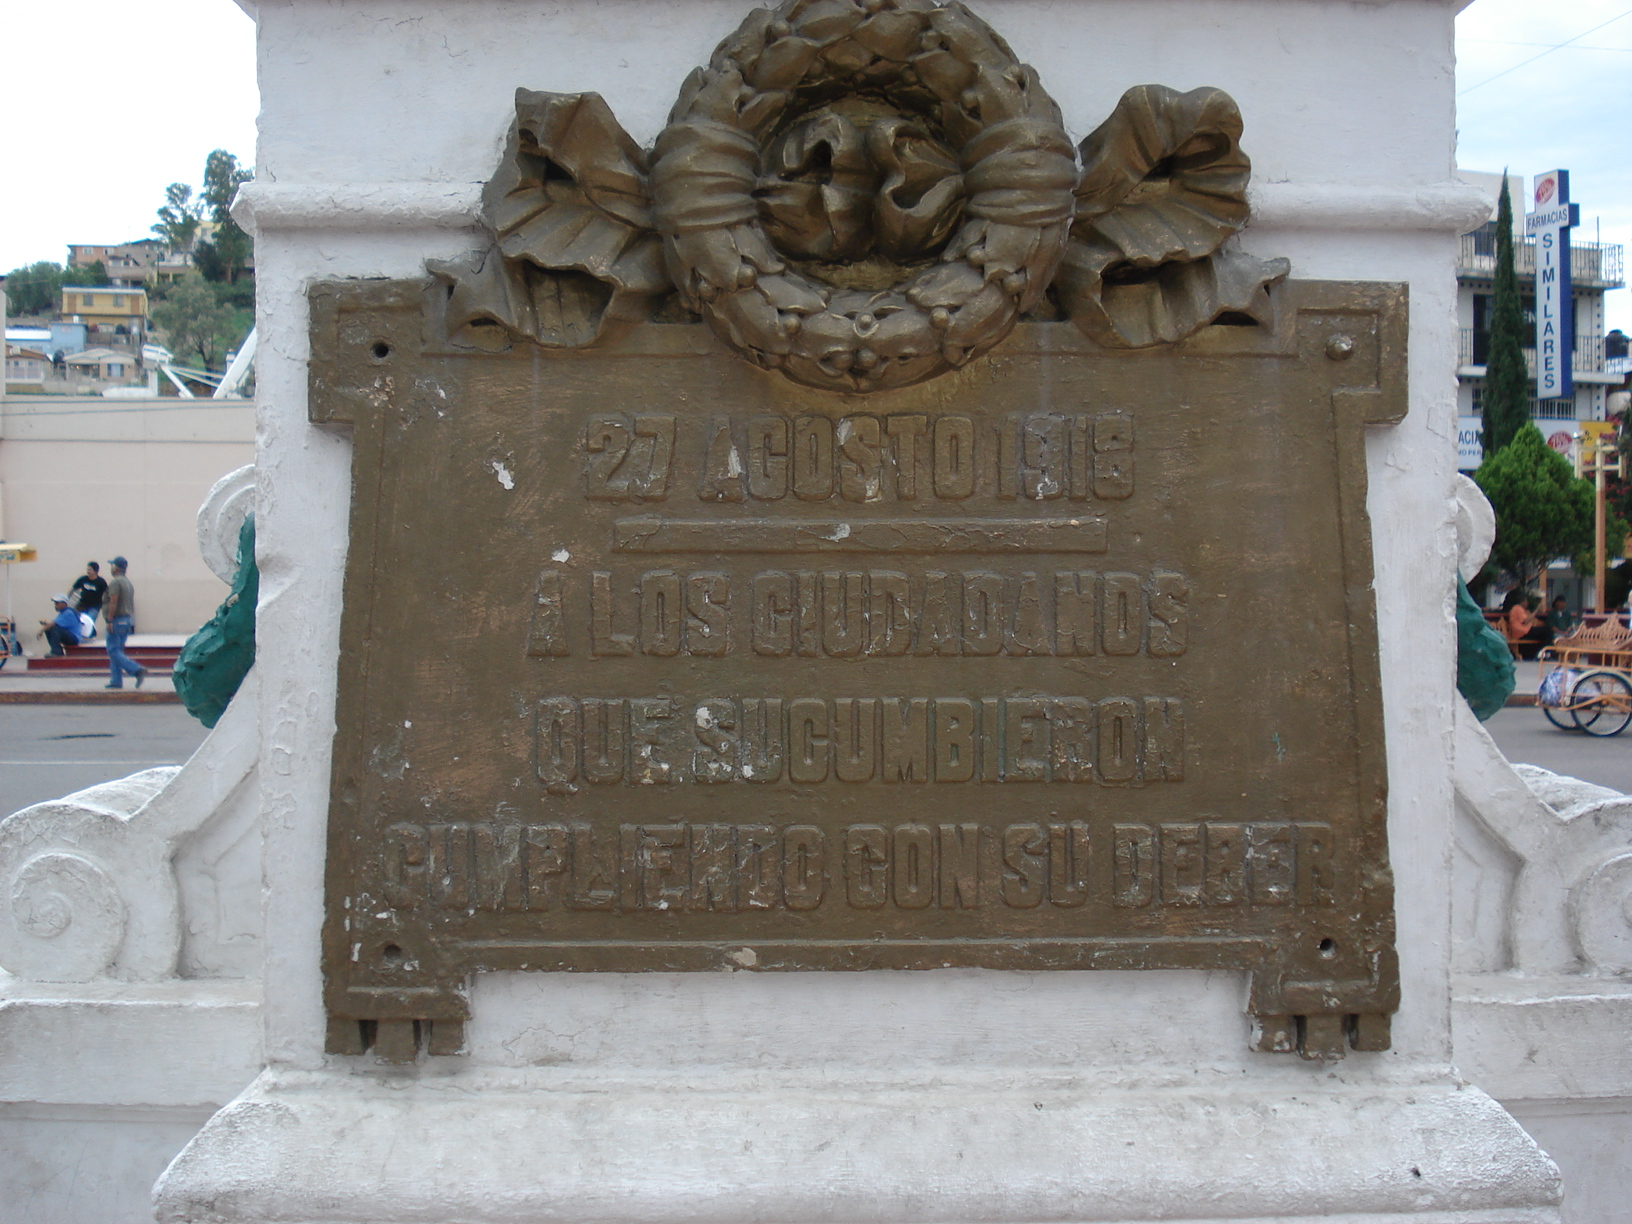 Close up of the Monument to the Citizens of Nogales, Sonora, who participated in the Battle of August 27, 1918